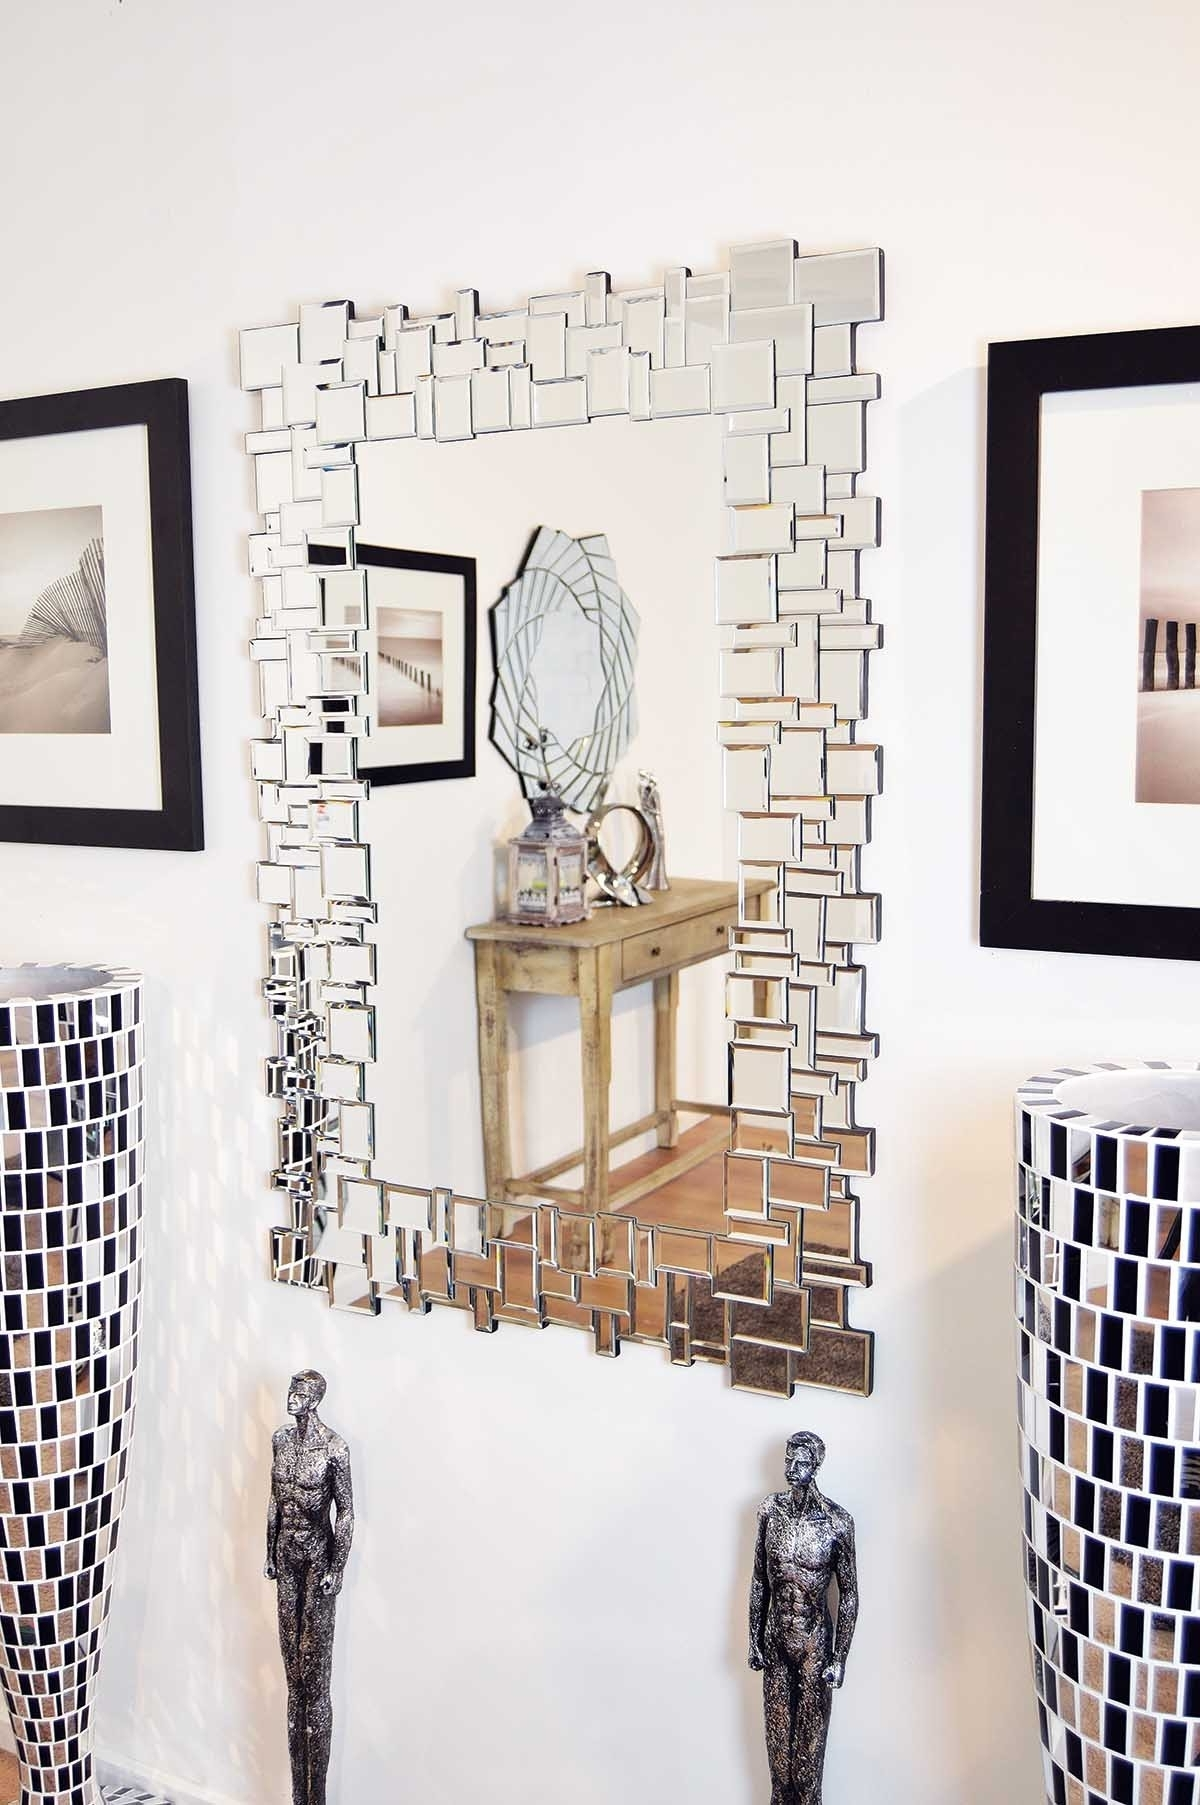 Home Decor: Glass Frame Large Wall Mirror And Wall Art With In Recent Mirrors Modern Wall Art (View 6 of 15)